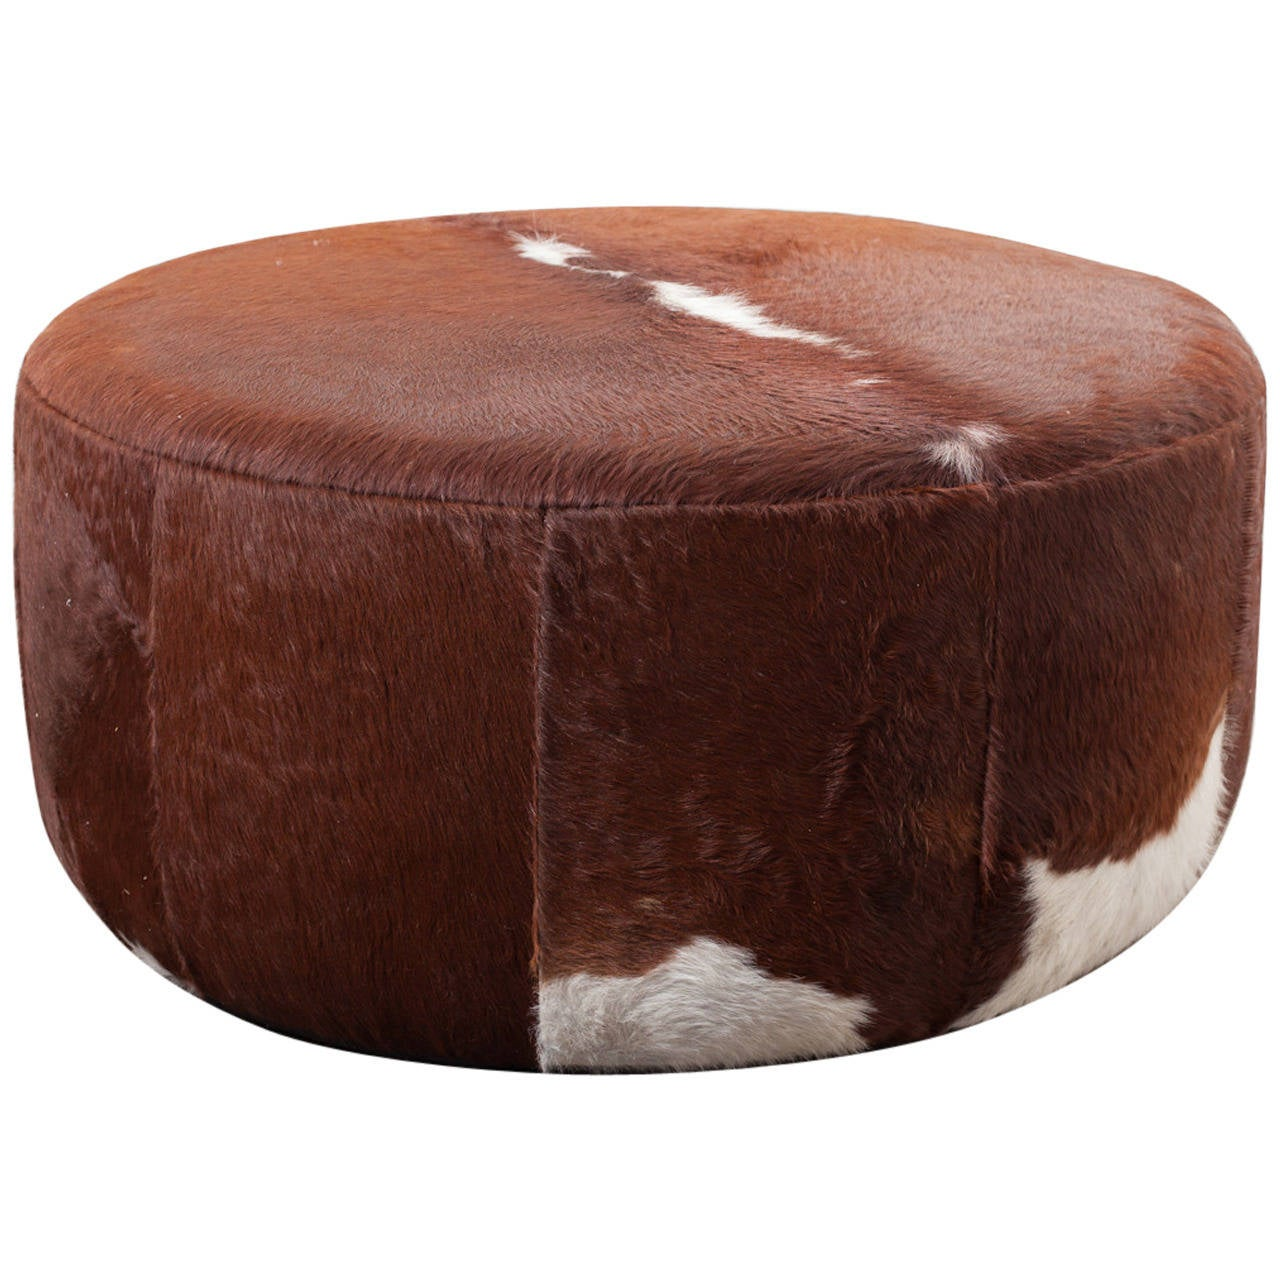 Three Foot Wide Vintage Inspired Cowhide Ottoman or Coffee Table 1